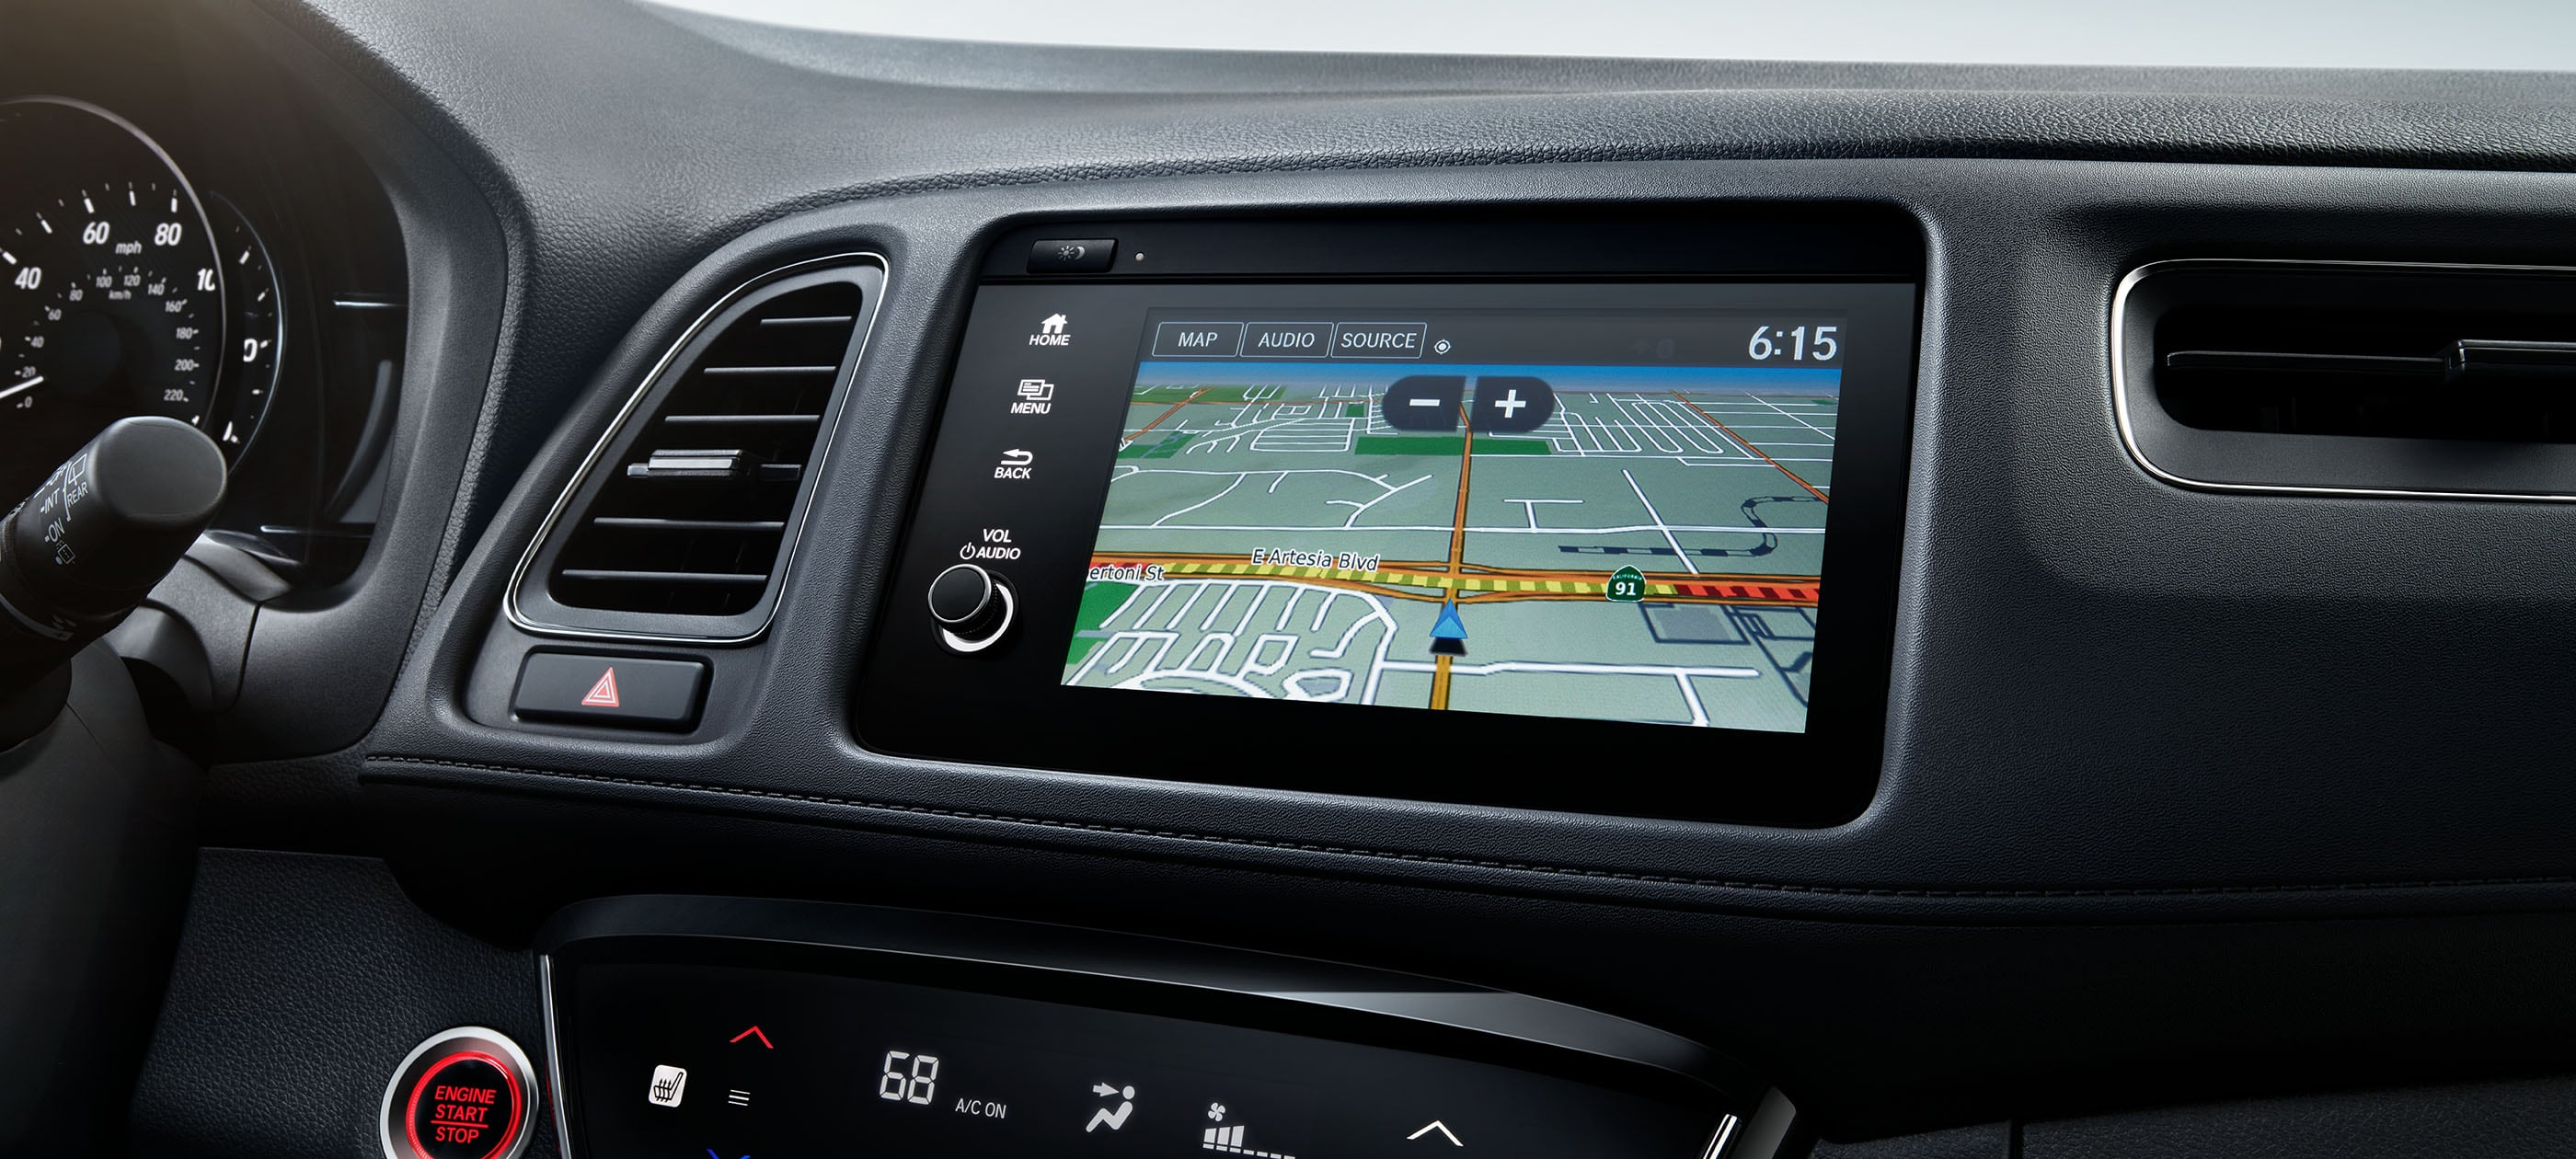 Honda Satellite-Linked Navigation System™ detail on Display Audio touch-screen in the 2020 Honda HR-V Touring with Black Leather.